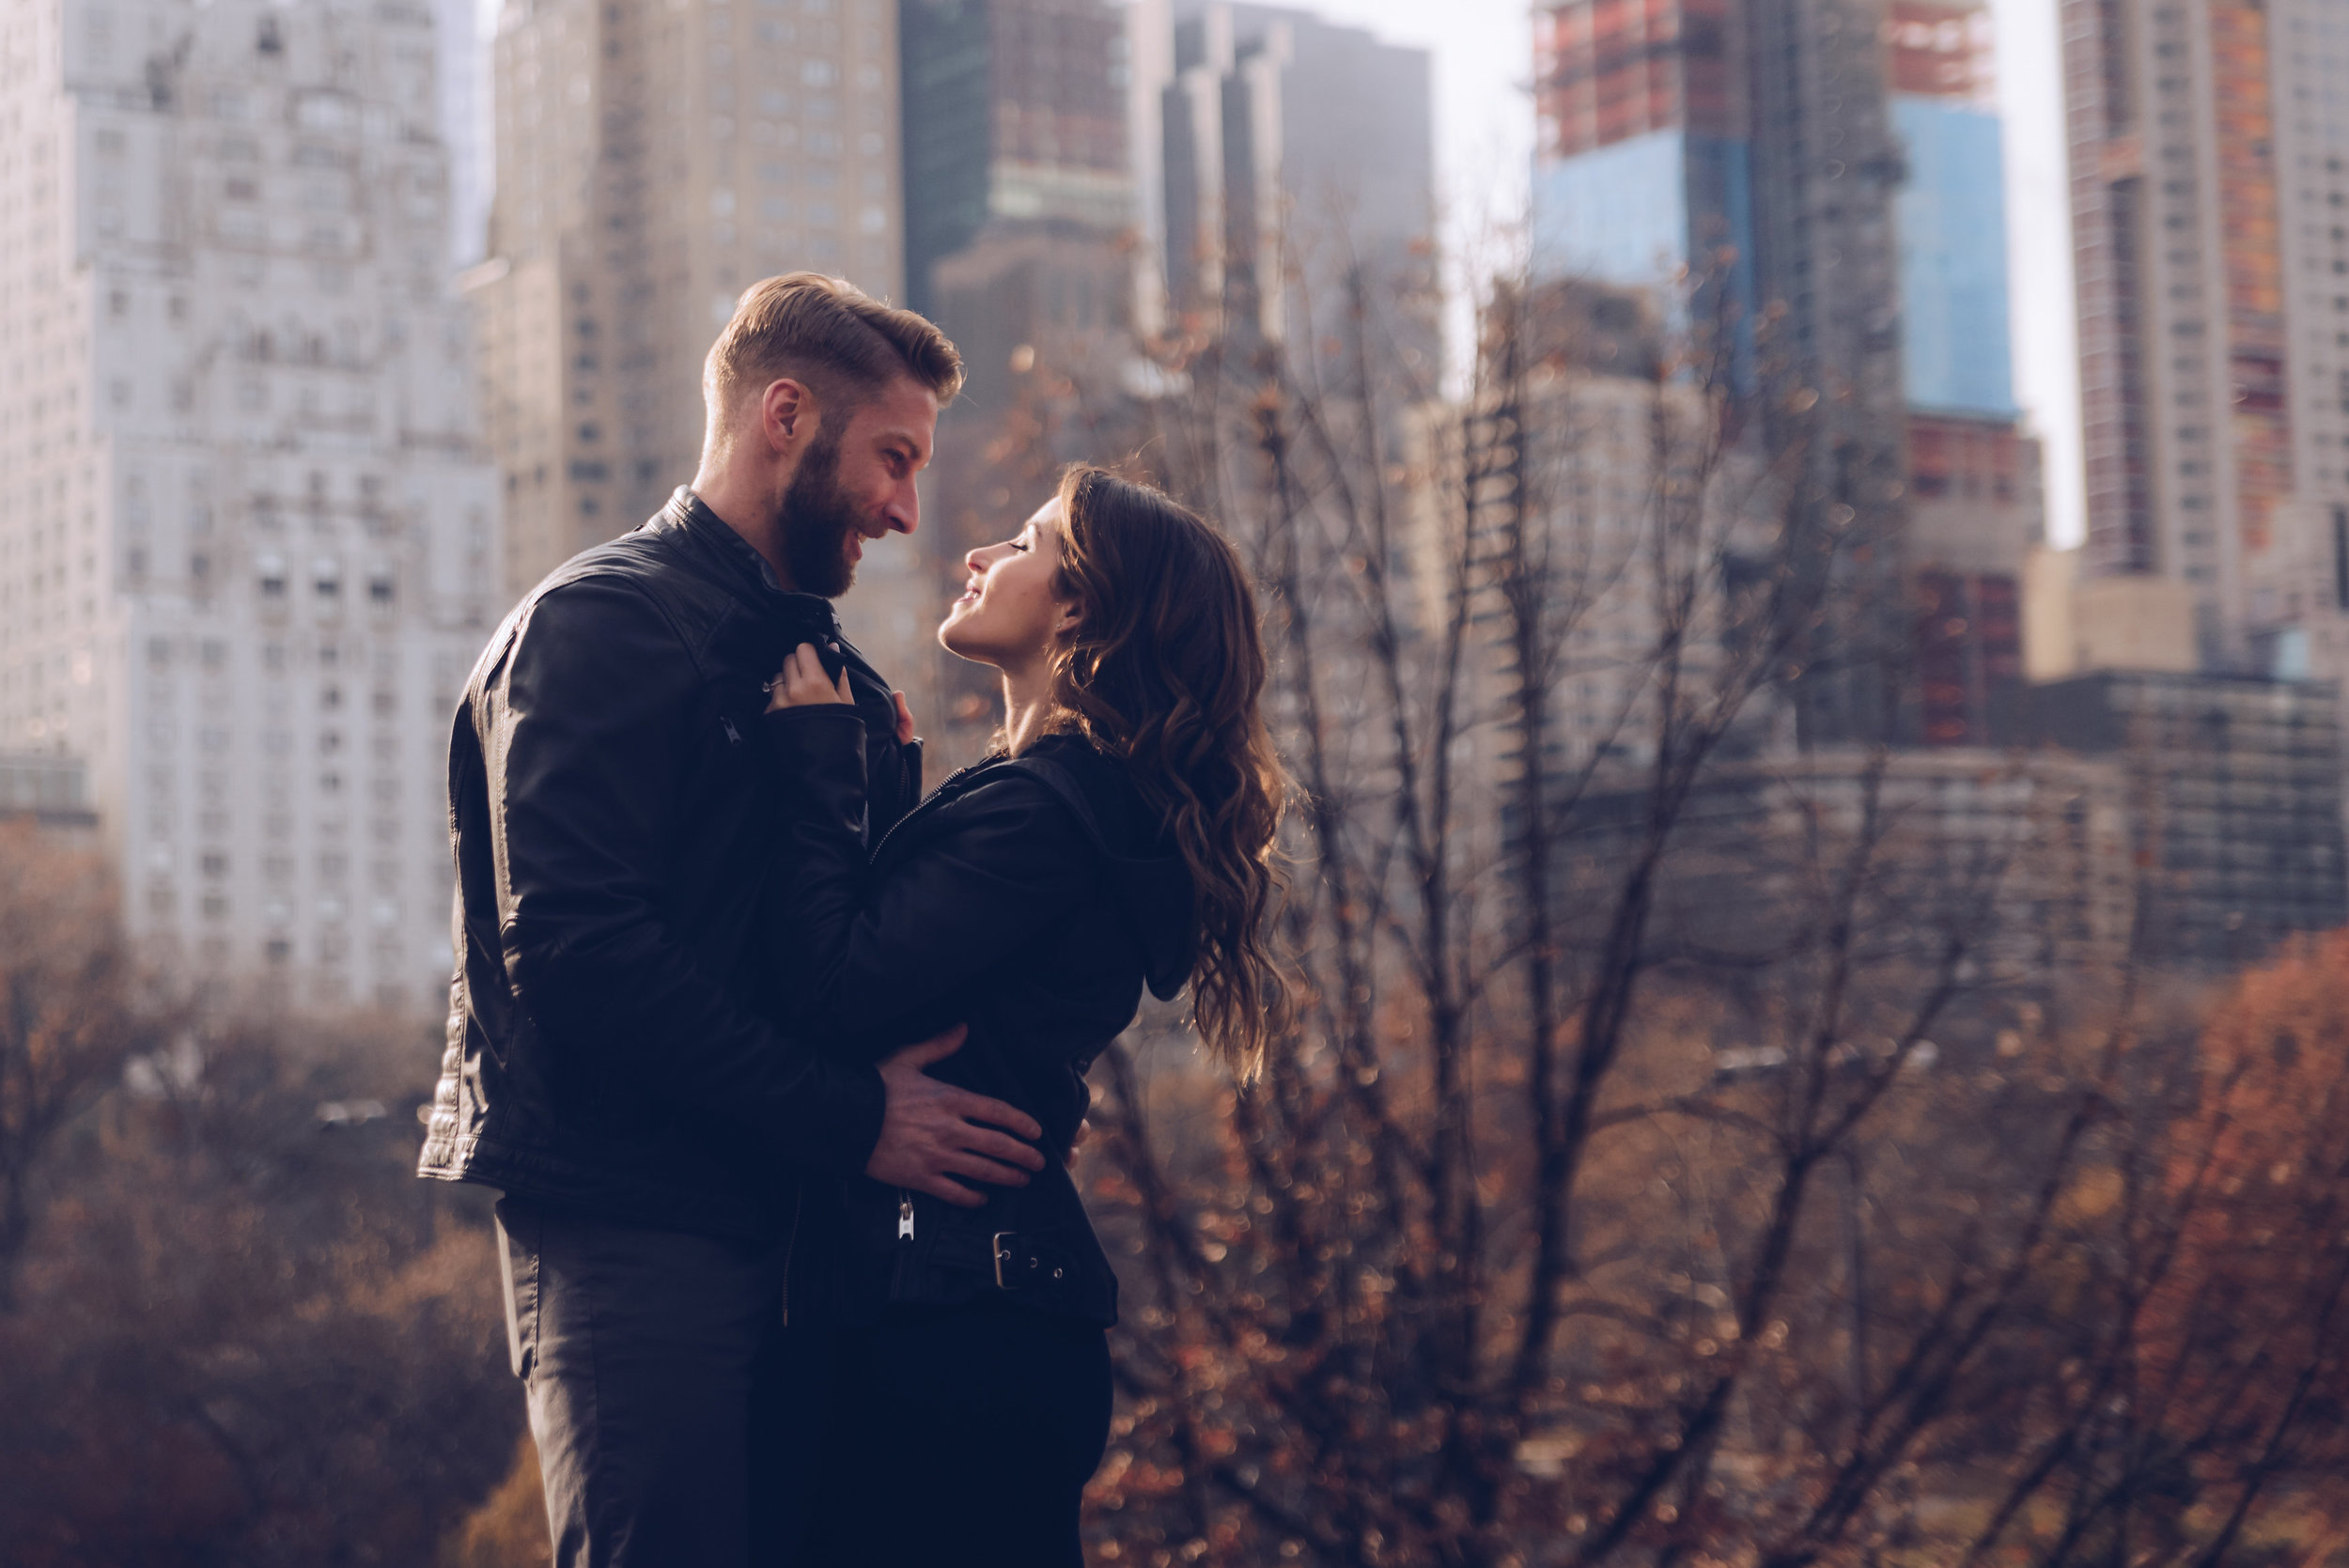 Samantha & Michael engagement session in Central Park, NYC by Unveiled-Weddings.com